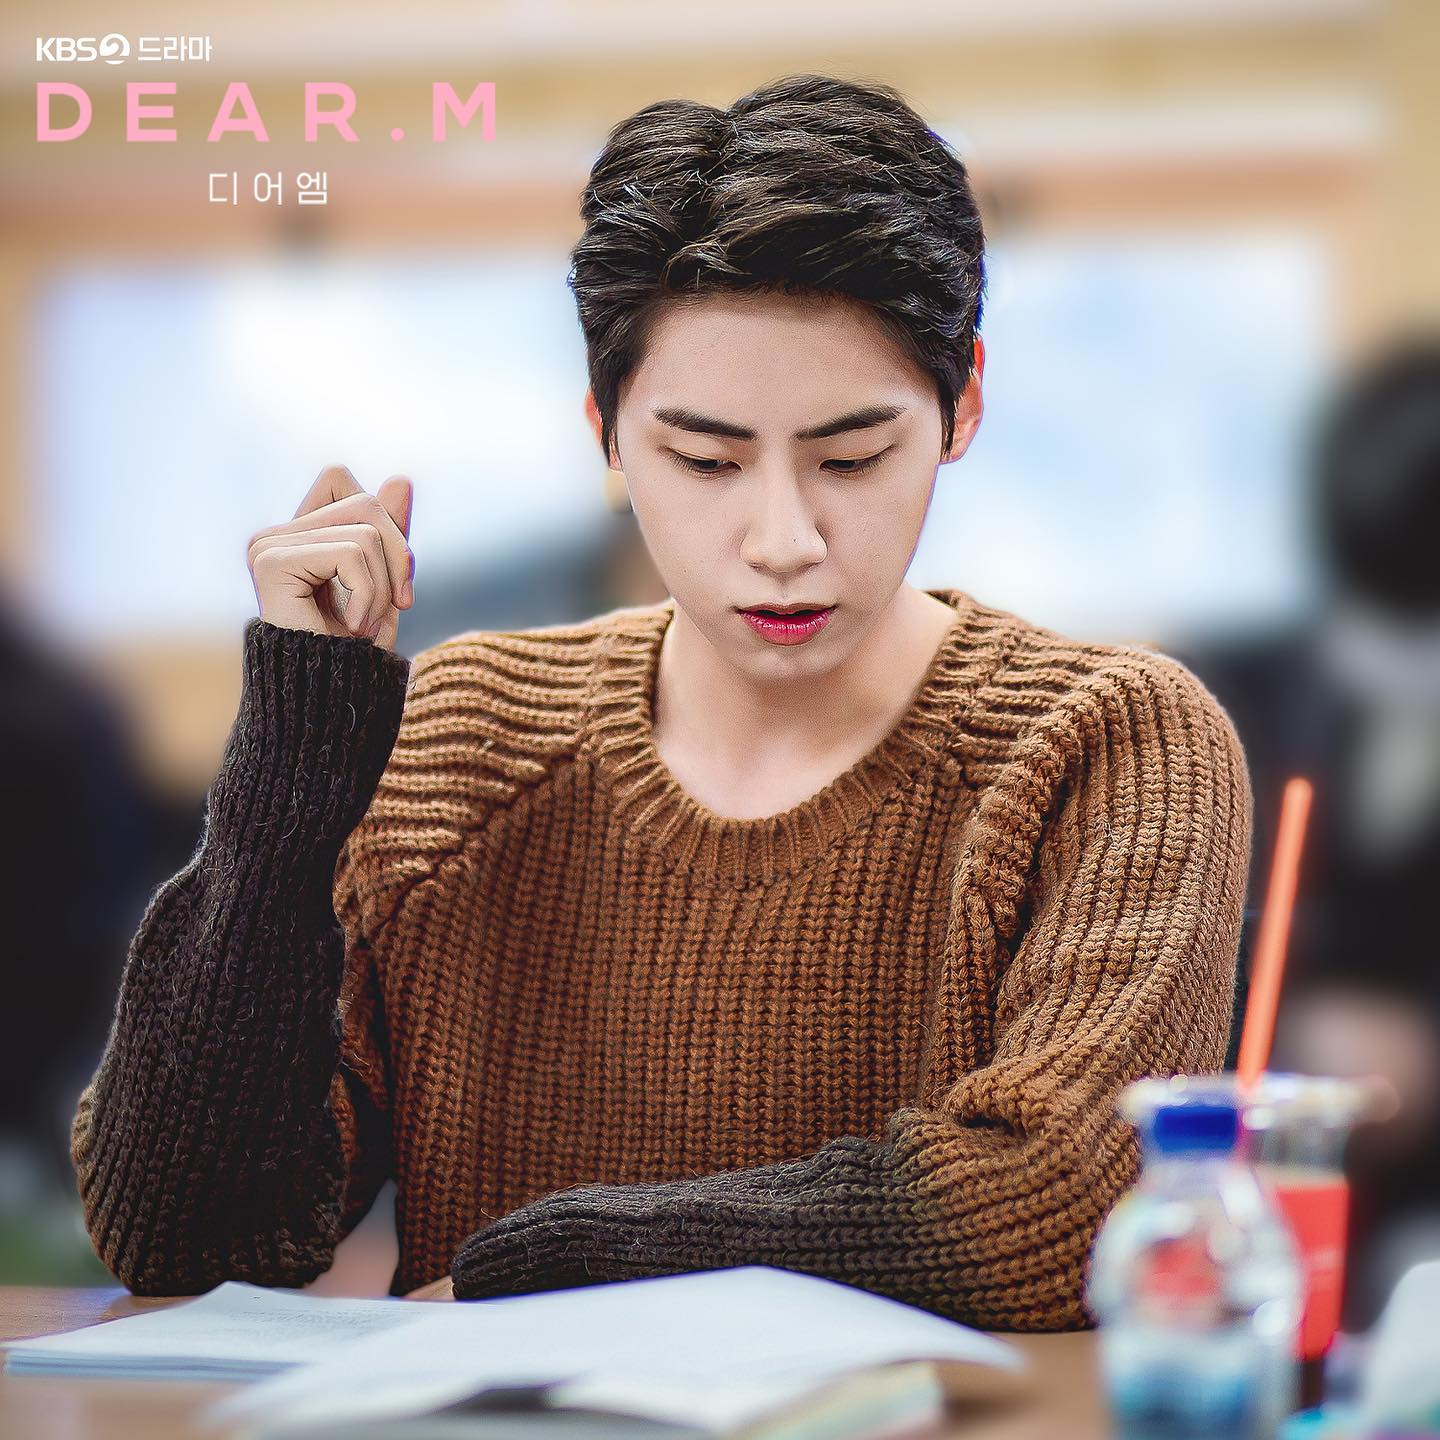 Dear M: NCT's Jaehyun, Park Hye Soo, Noh Jung Ui, Bae Hyun Sung, and more gather to read scripts